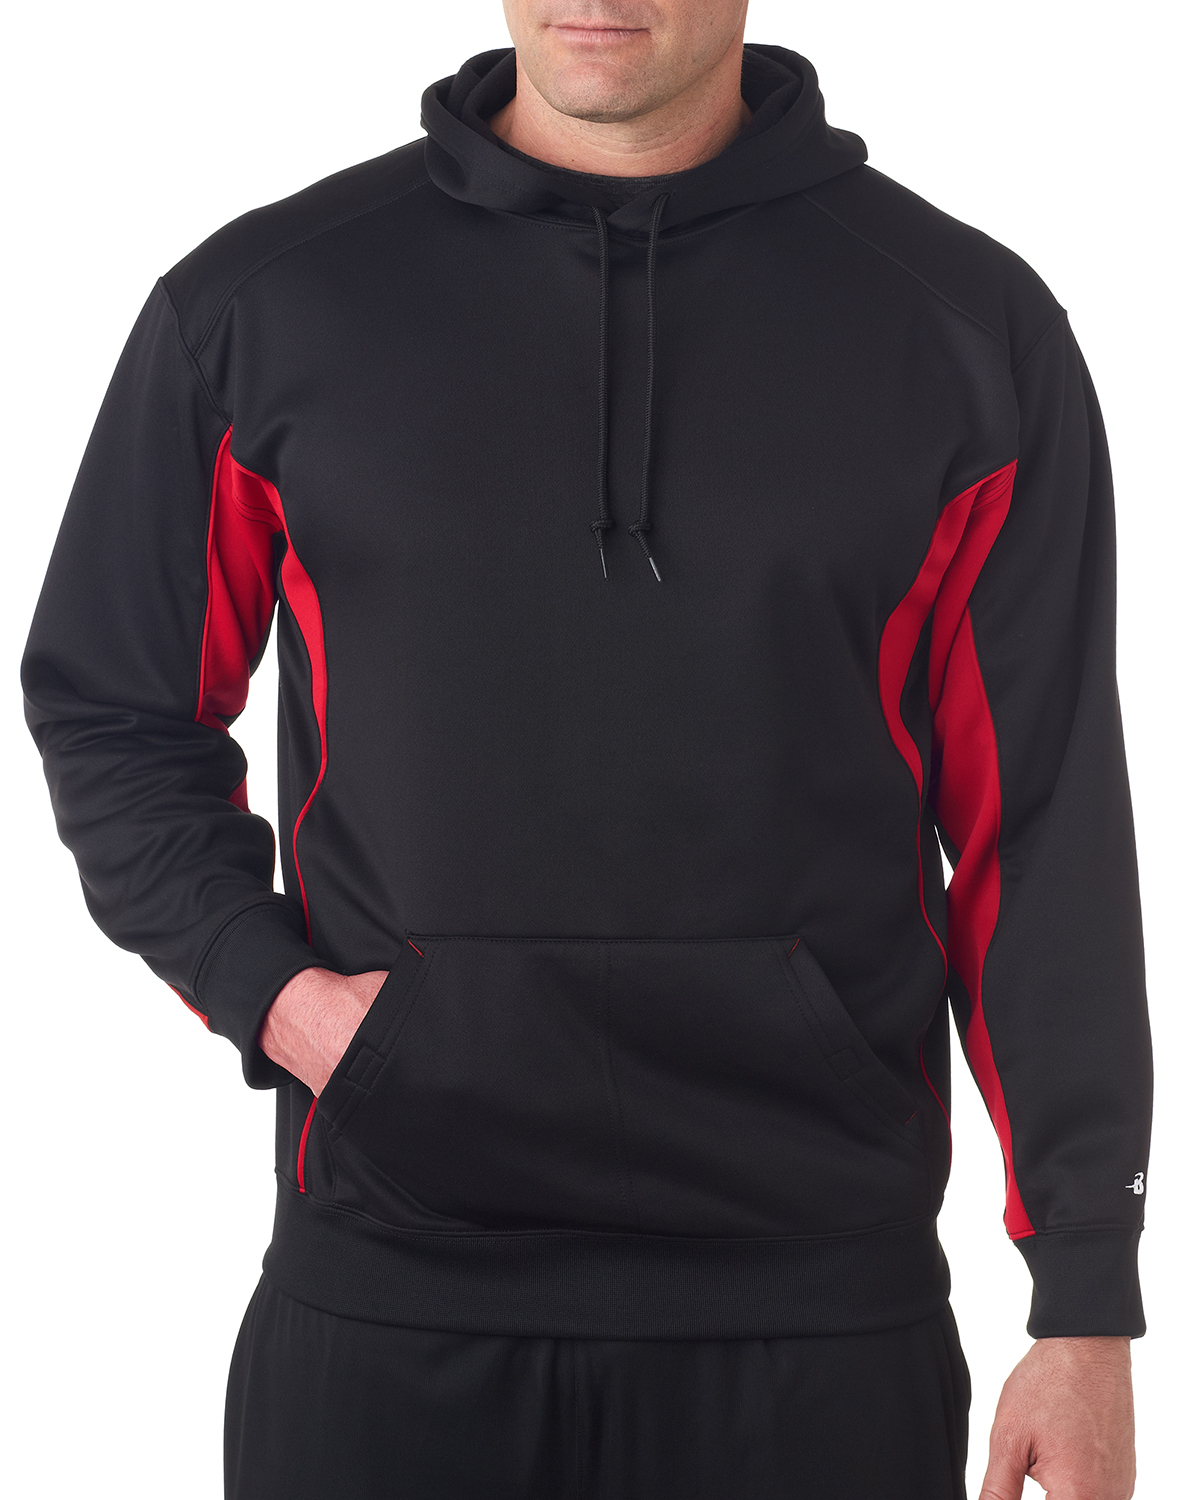 Badger Sport BD1465 - Adult Drive Hooded Fleece